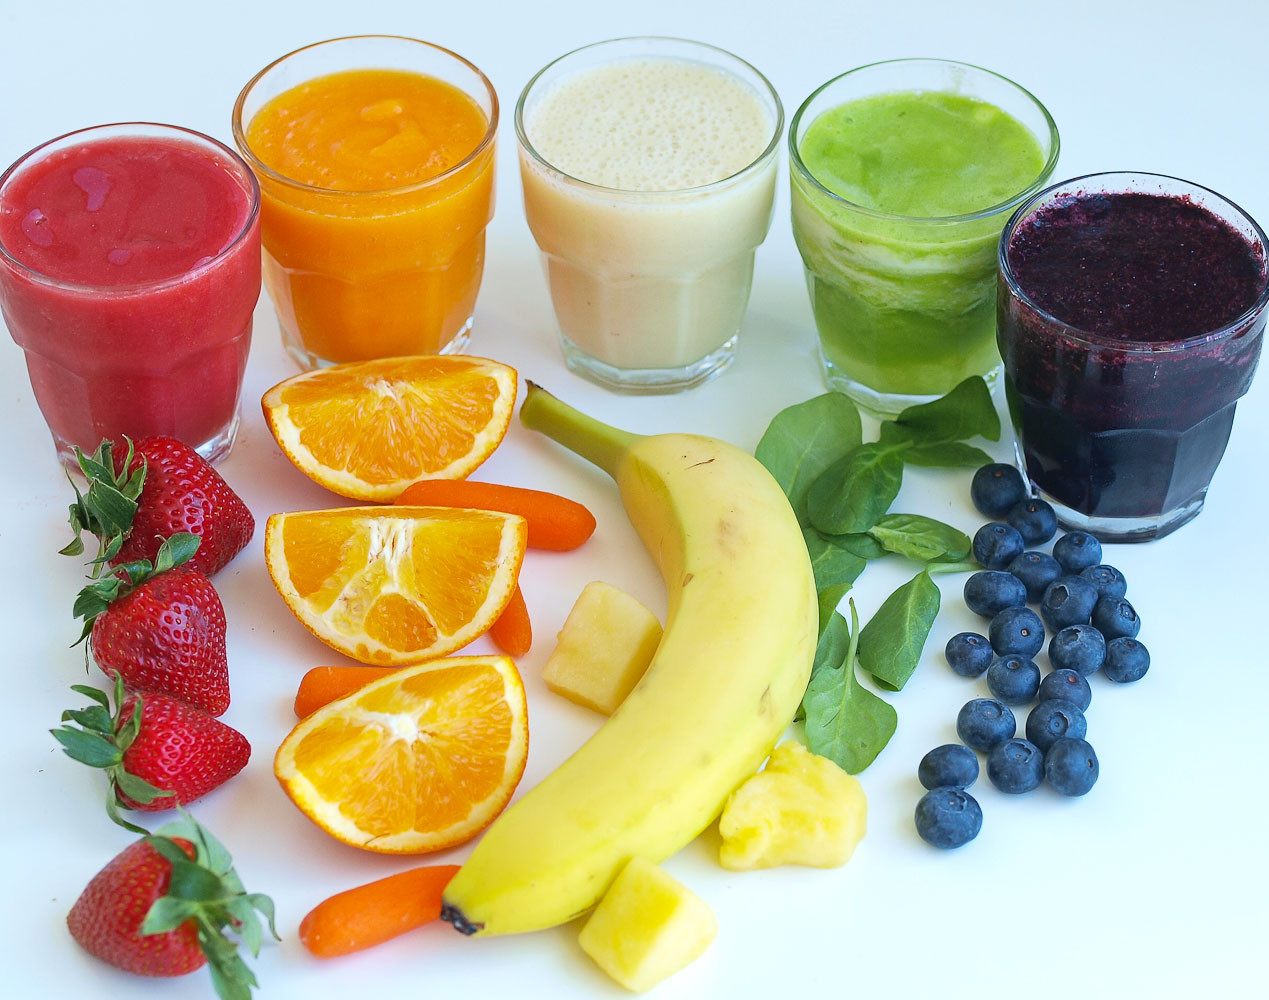 Good Healthy Smoothies  Rainbow Smoothies A Tasting Activity for Kids Happy